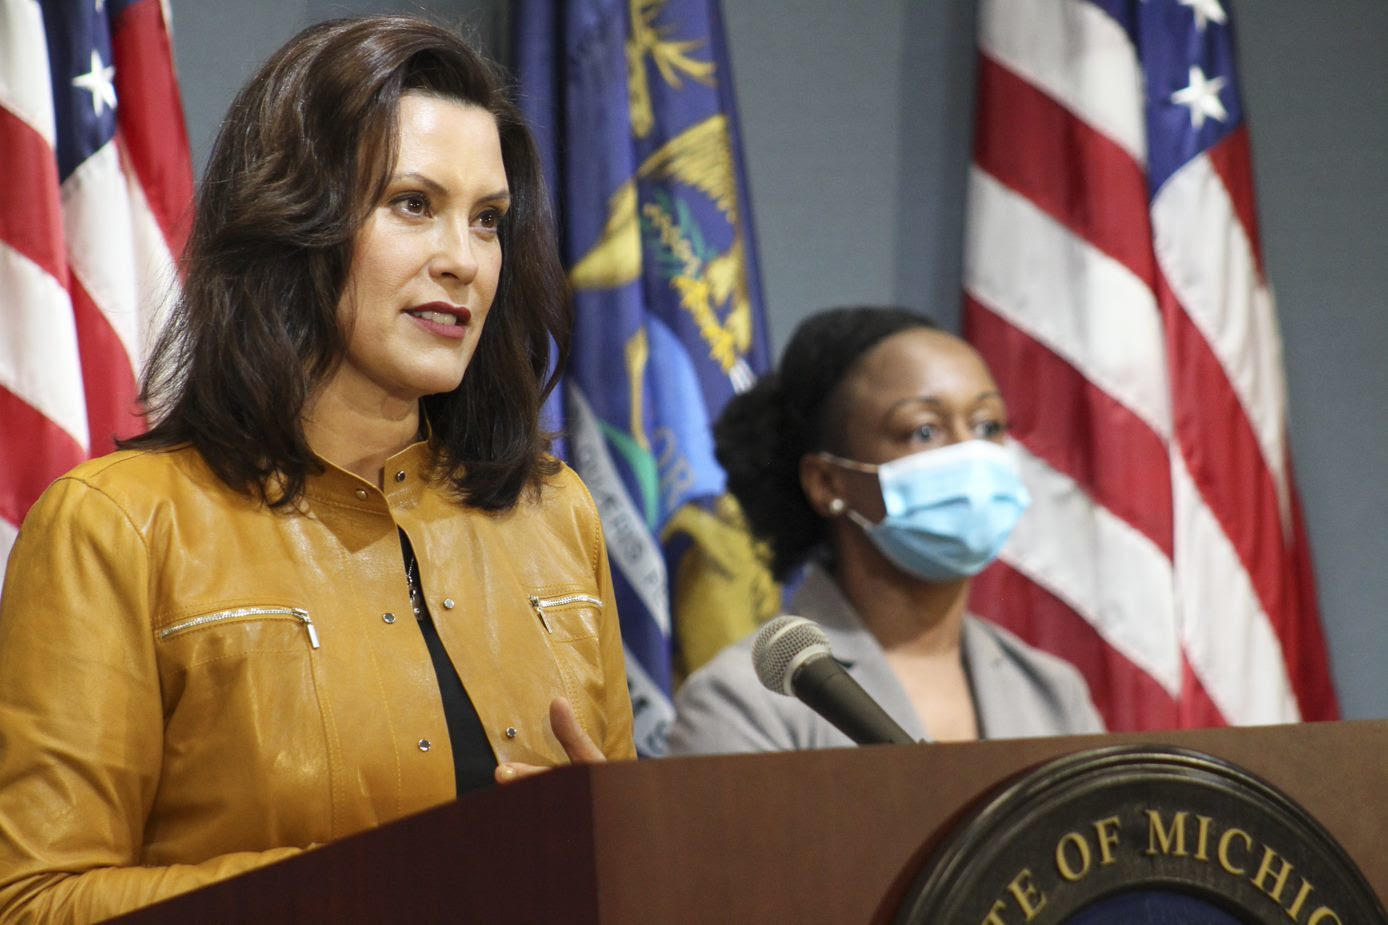 Read the latest stay-at-home order by Gov. Whitmer